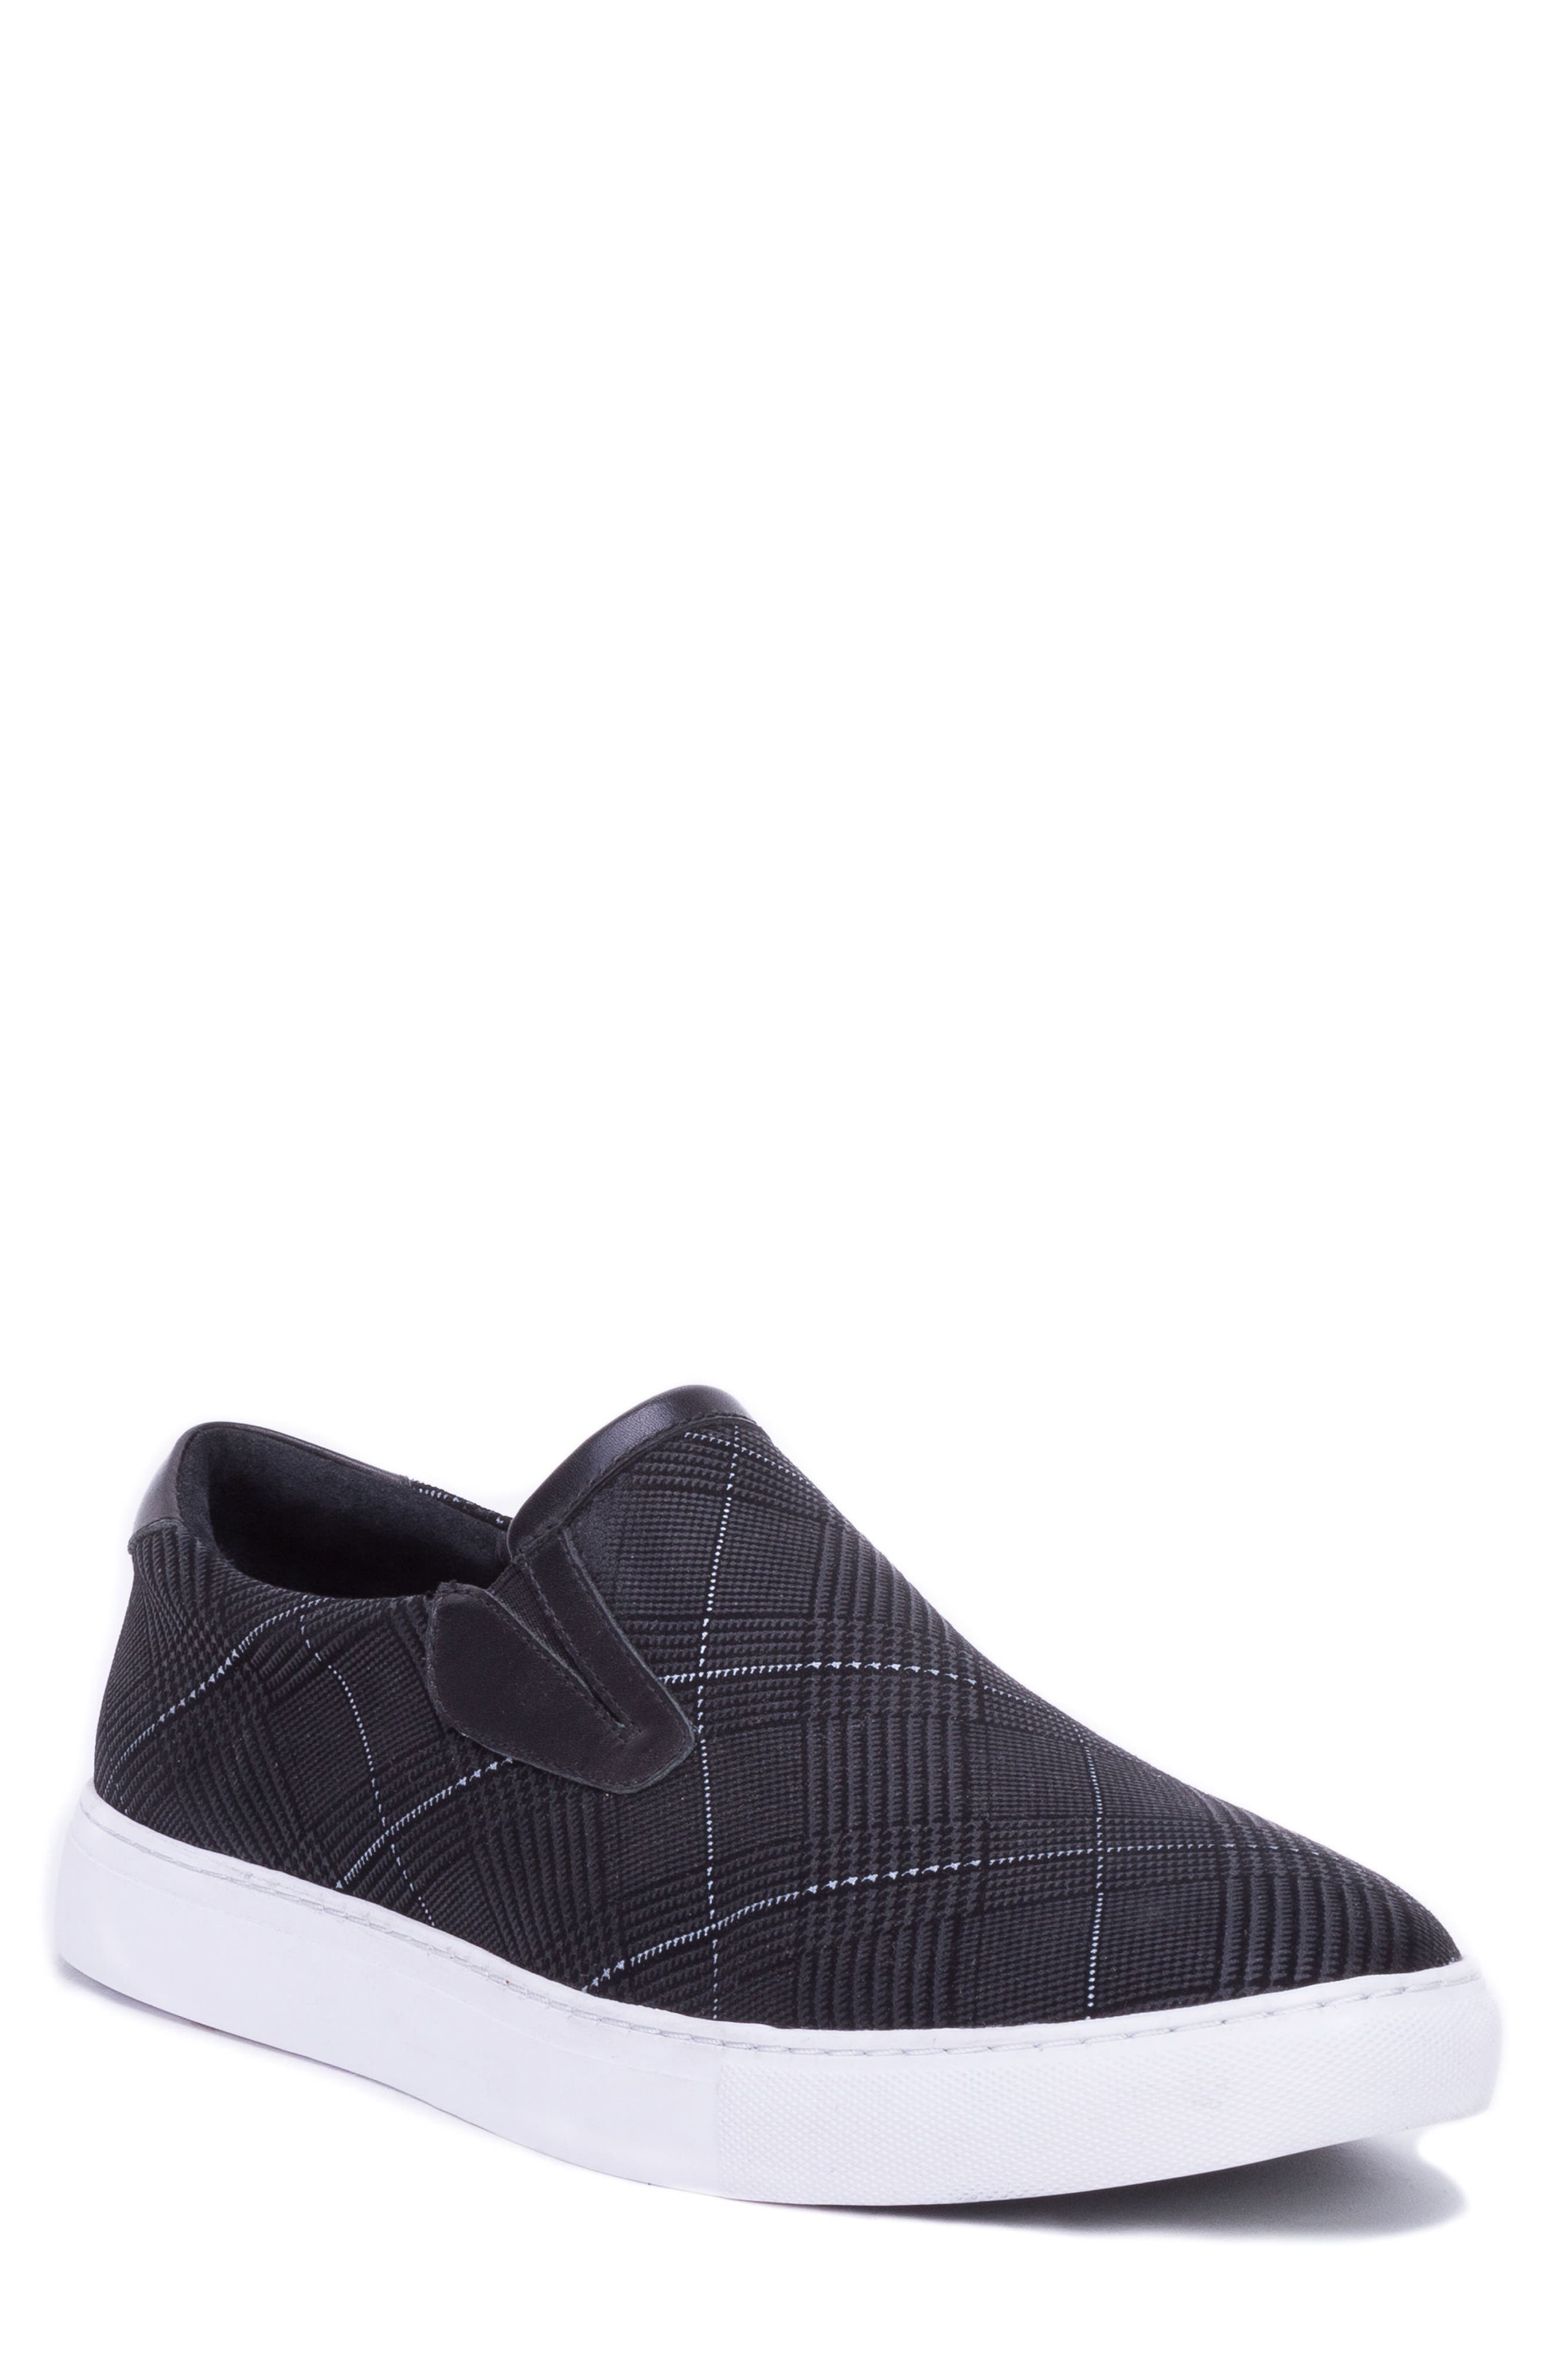 Kerby Slip-On Sneaker,                             Main thumbnail 1, color,                             BLACK SUEDE